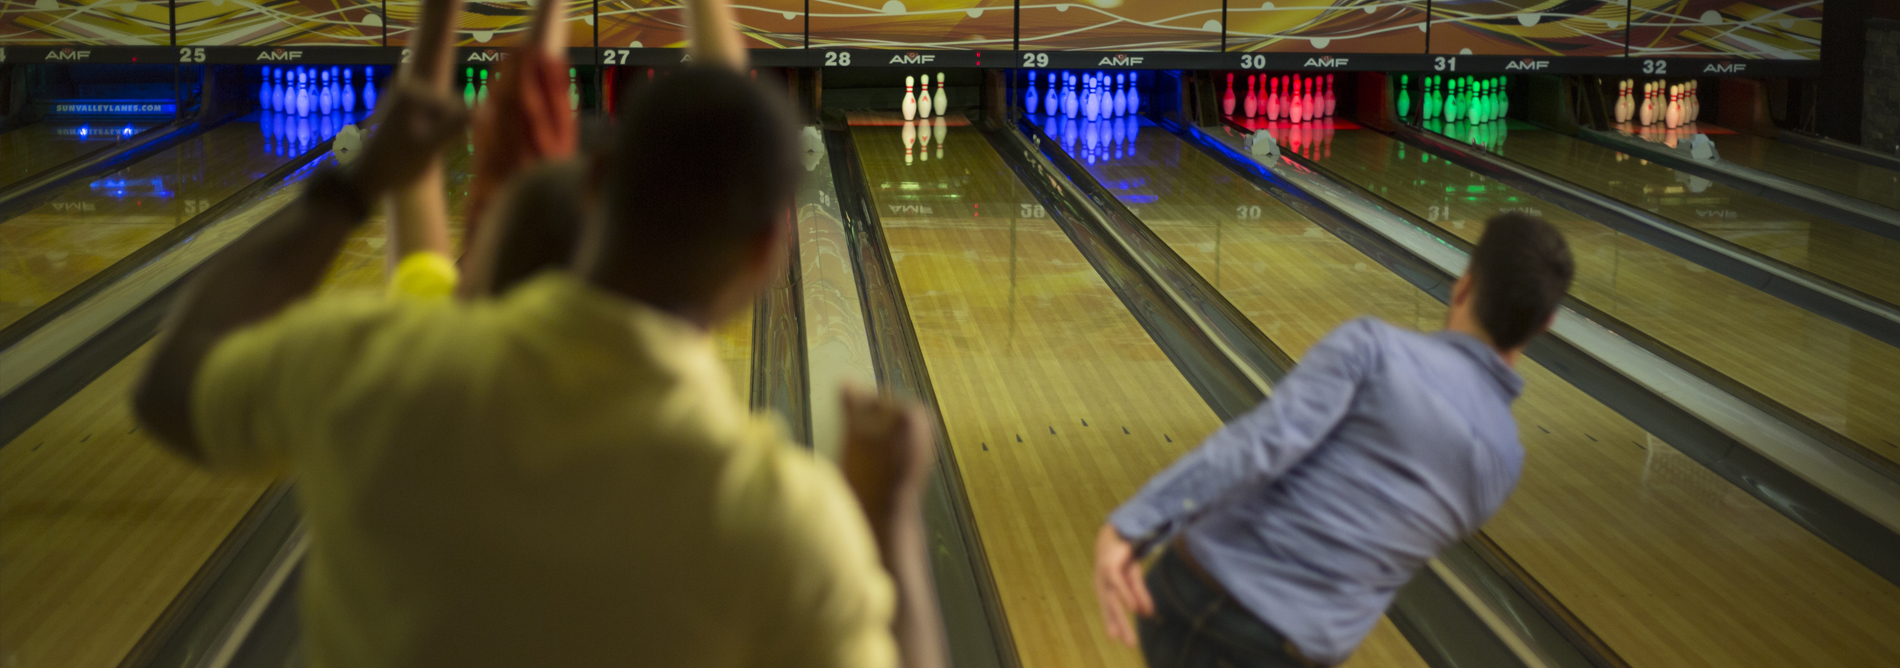 QubicaAMF-bowling-CENTERPUNCH-A-More-Impactful-Bowling-Experience-banner_02.jpg